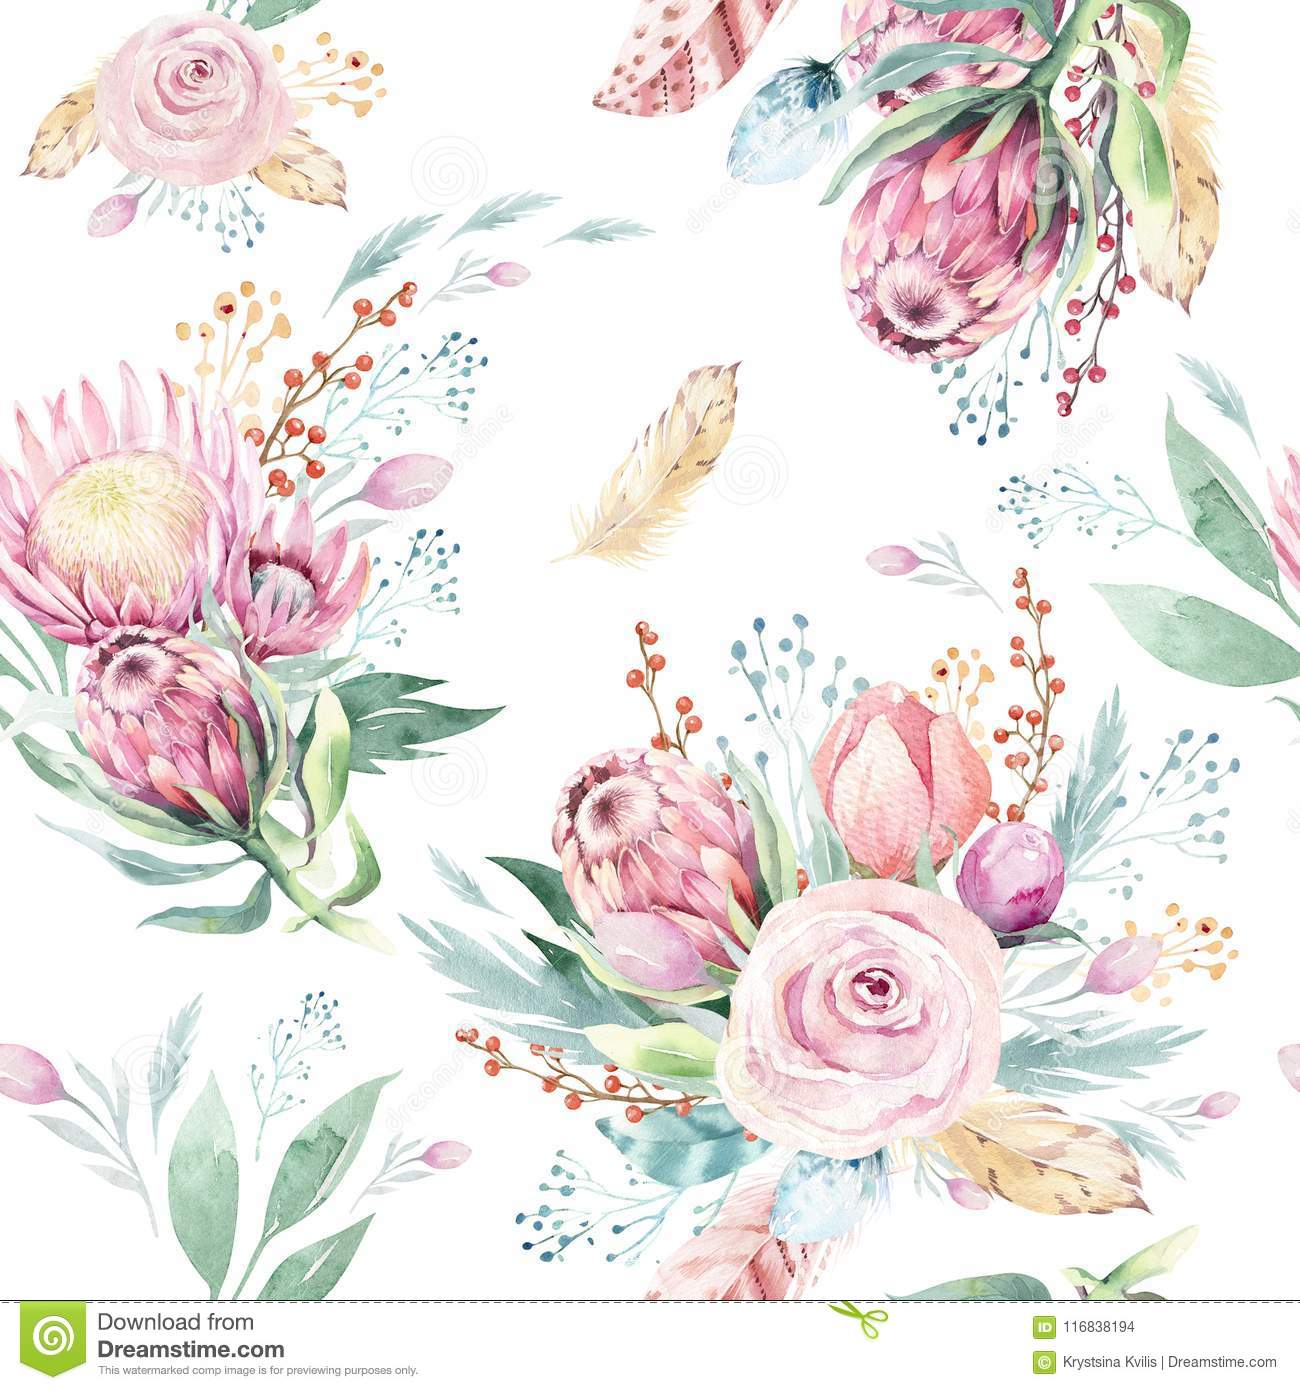 Hand drawing watercolor floral pattern with protea rose, leaves, branches and flowers. Bohemian seamless gold pink